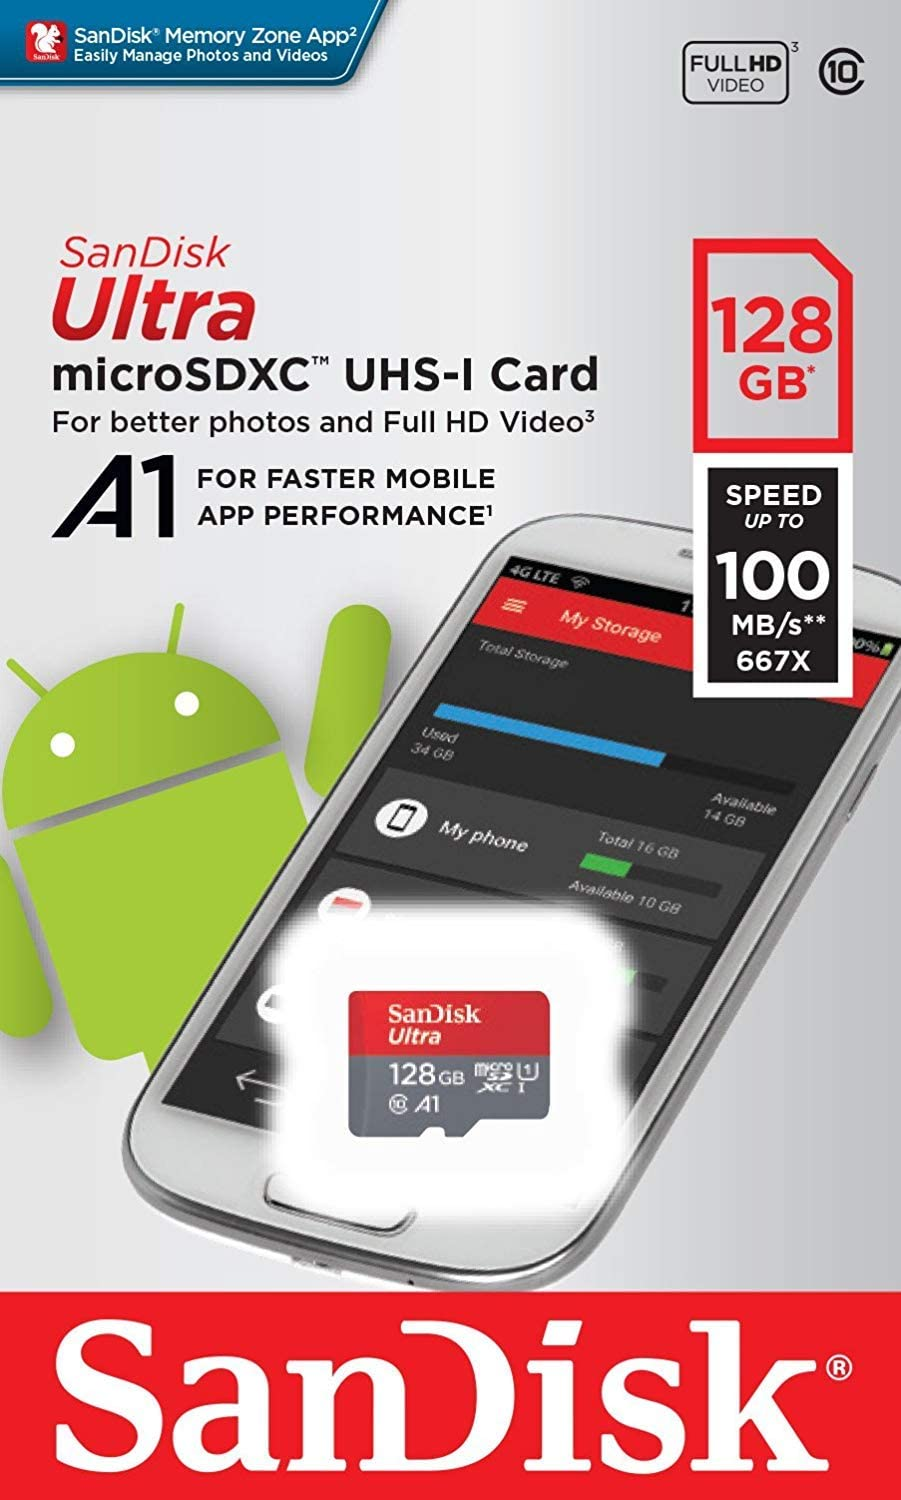 32GB by SanFlash SanDisk Ultra 128GB MicroSDXC Verified for Samsung Galaxy Note 10.1 2014 Edition 100MBs A1 U1 C10 Works with SanDisk